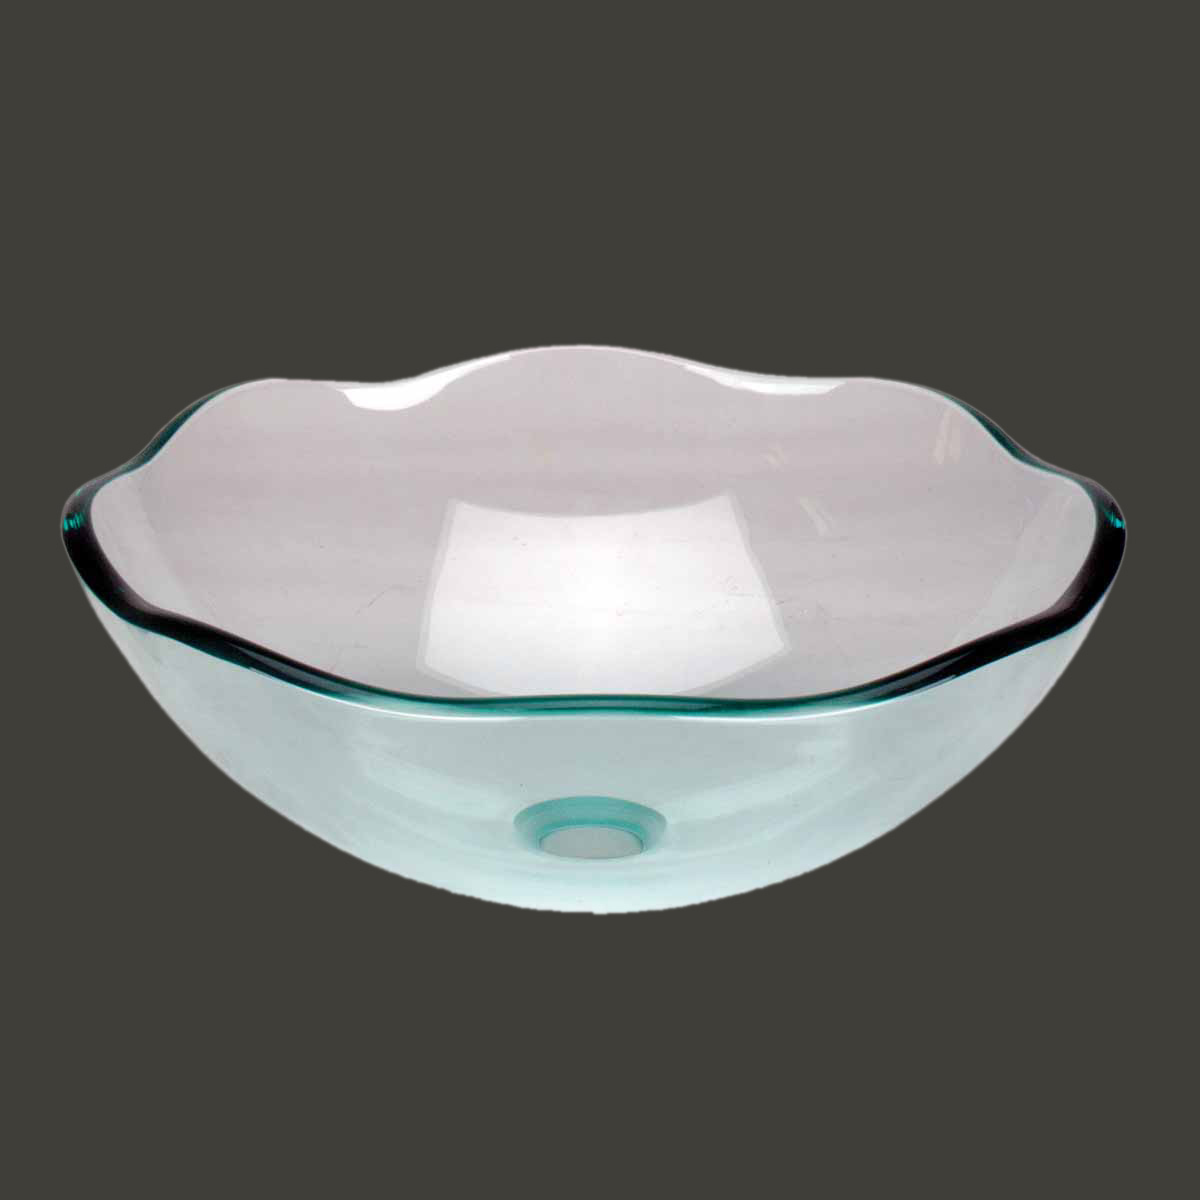 Tempered Glass Vessel Sink With Drain Green Single Layer 8 Petal Bowl Sink